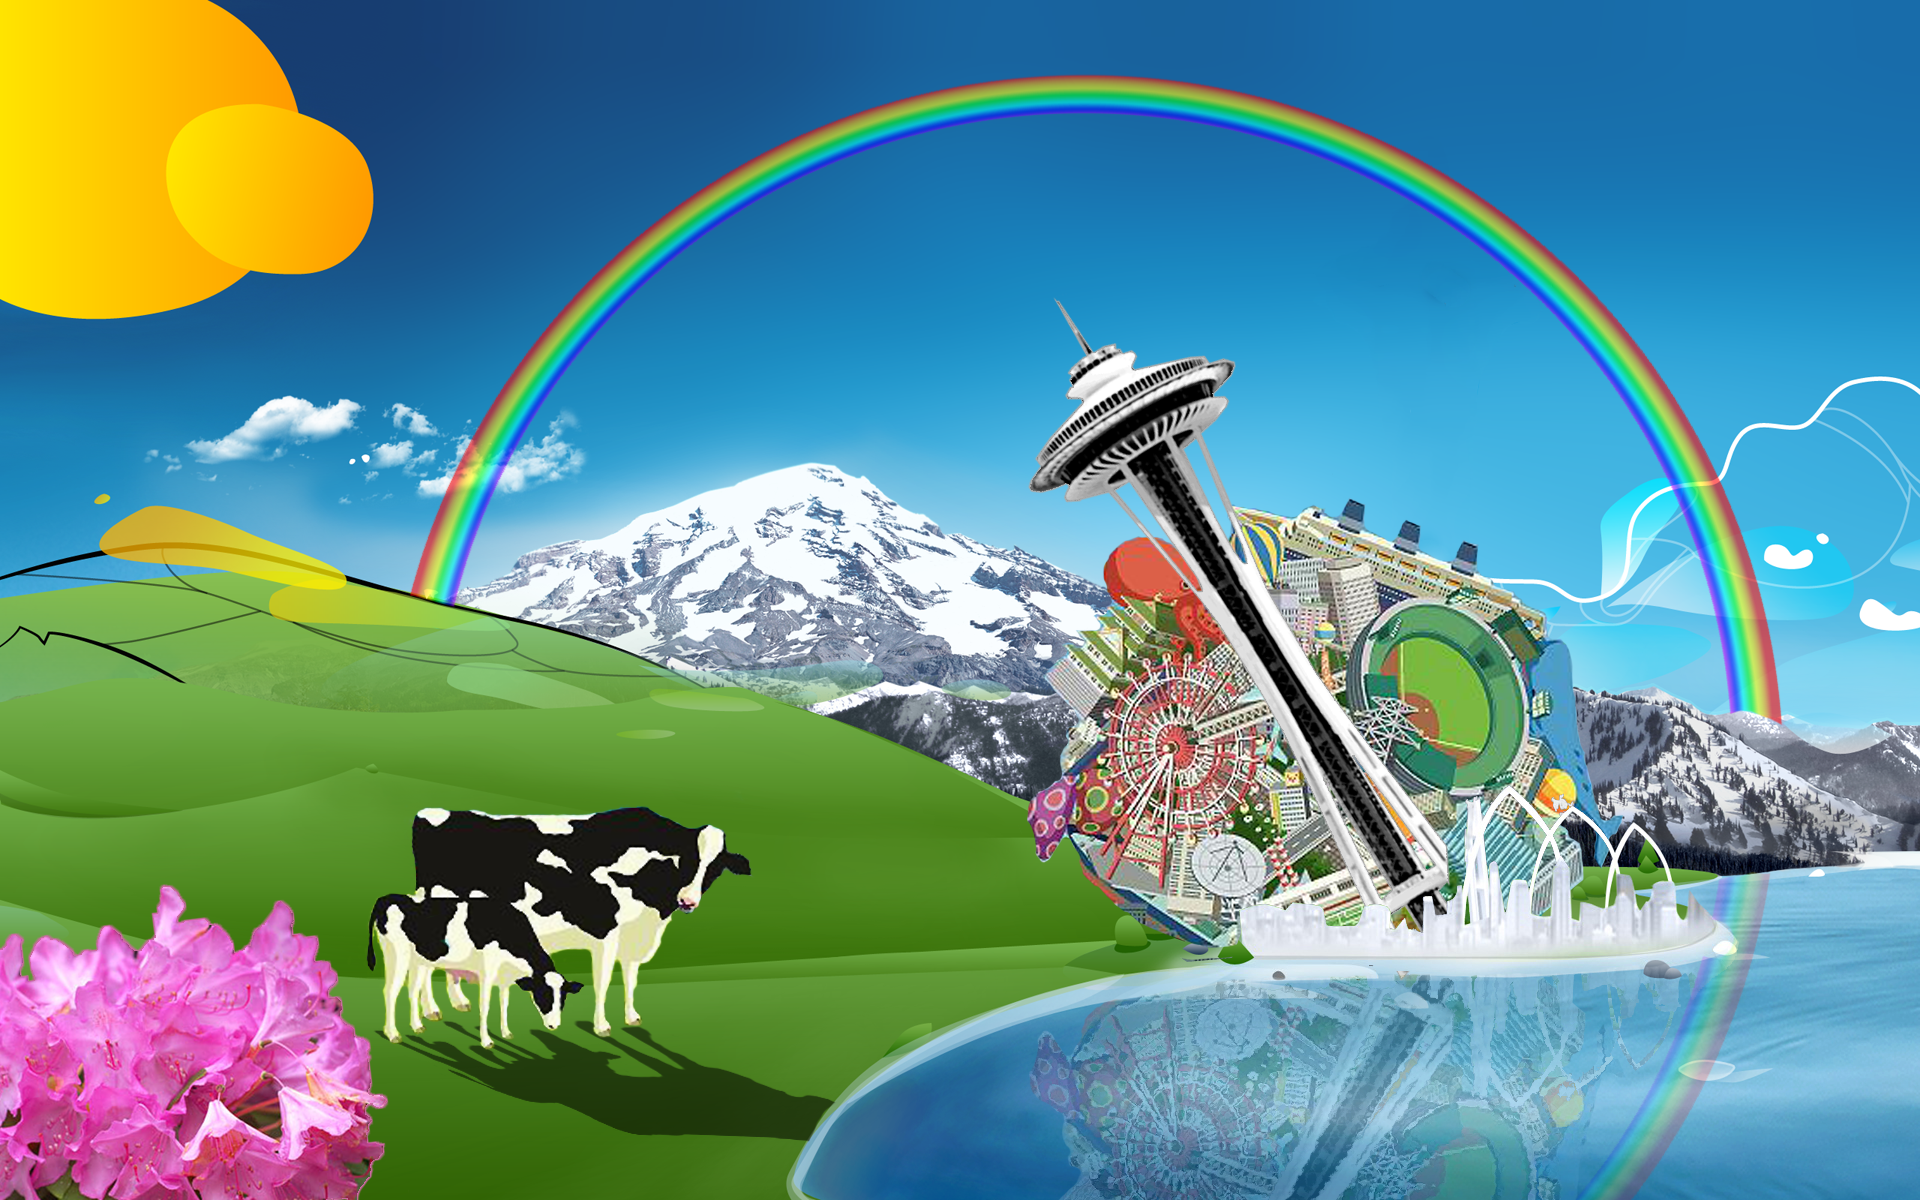 Katamari Windows 8 Lock Screen By ComputerGenius